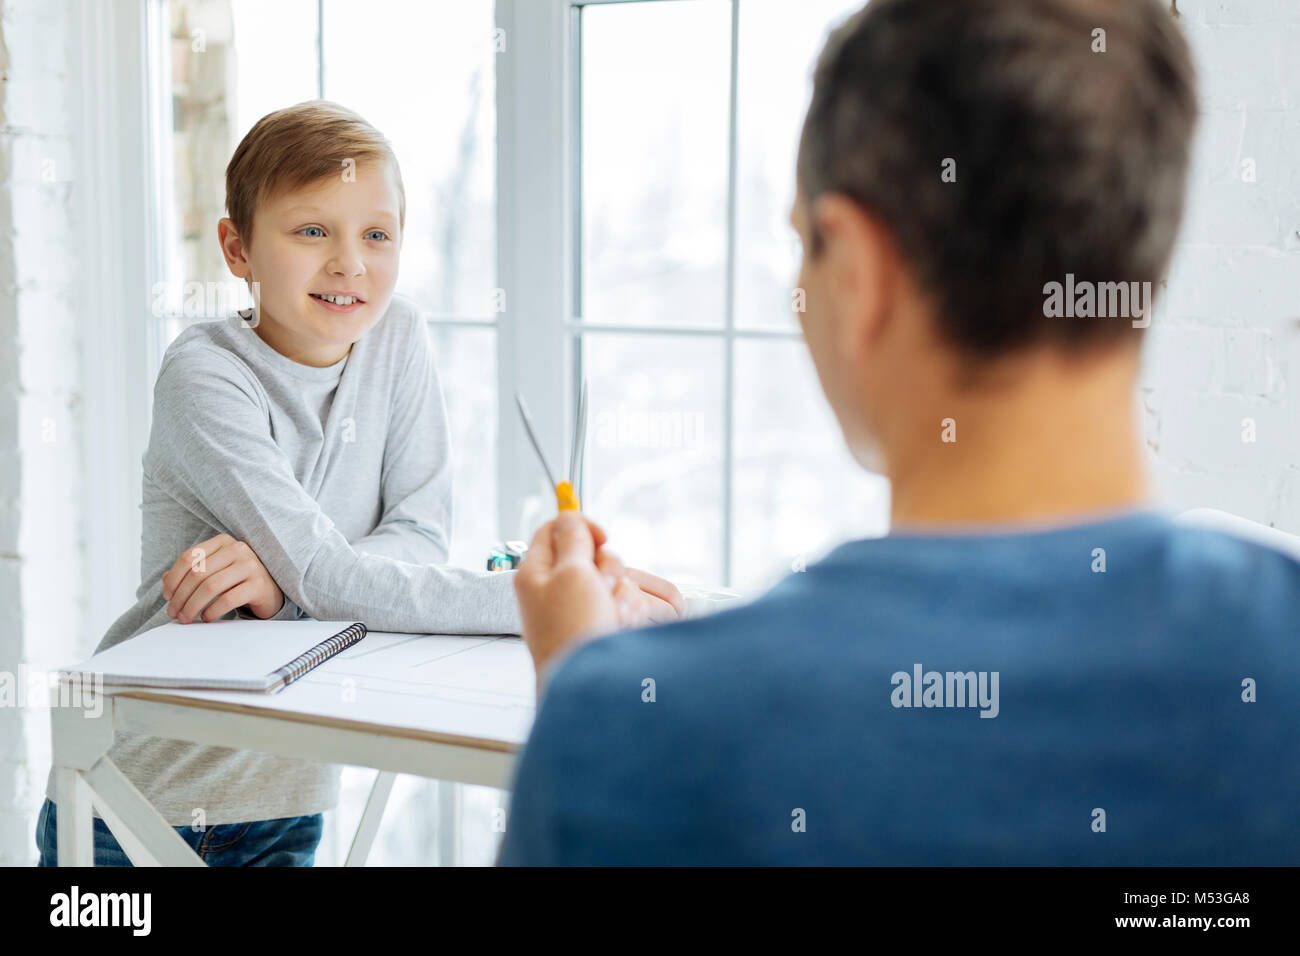 Pre-teen boy learning how to use compass from father - Stock Image